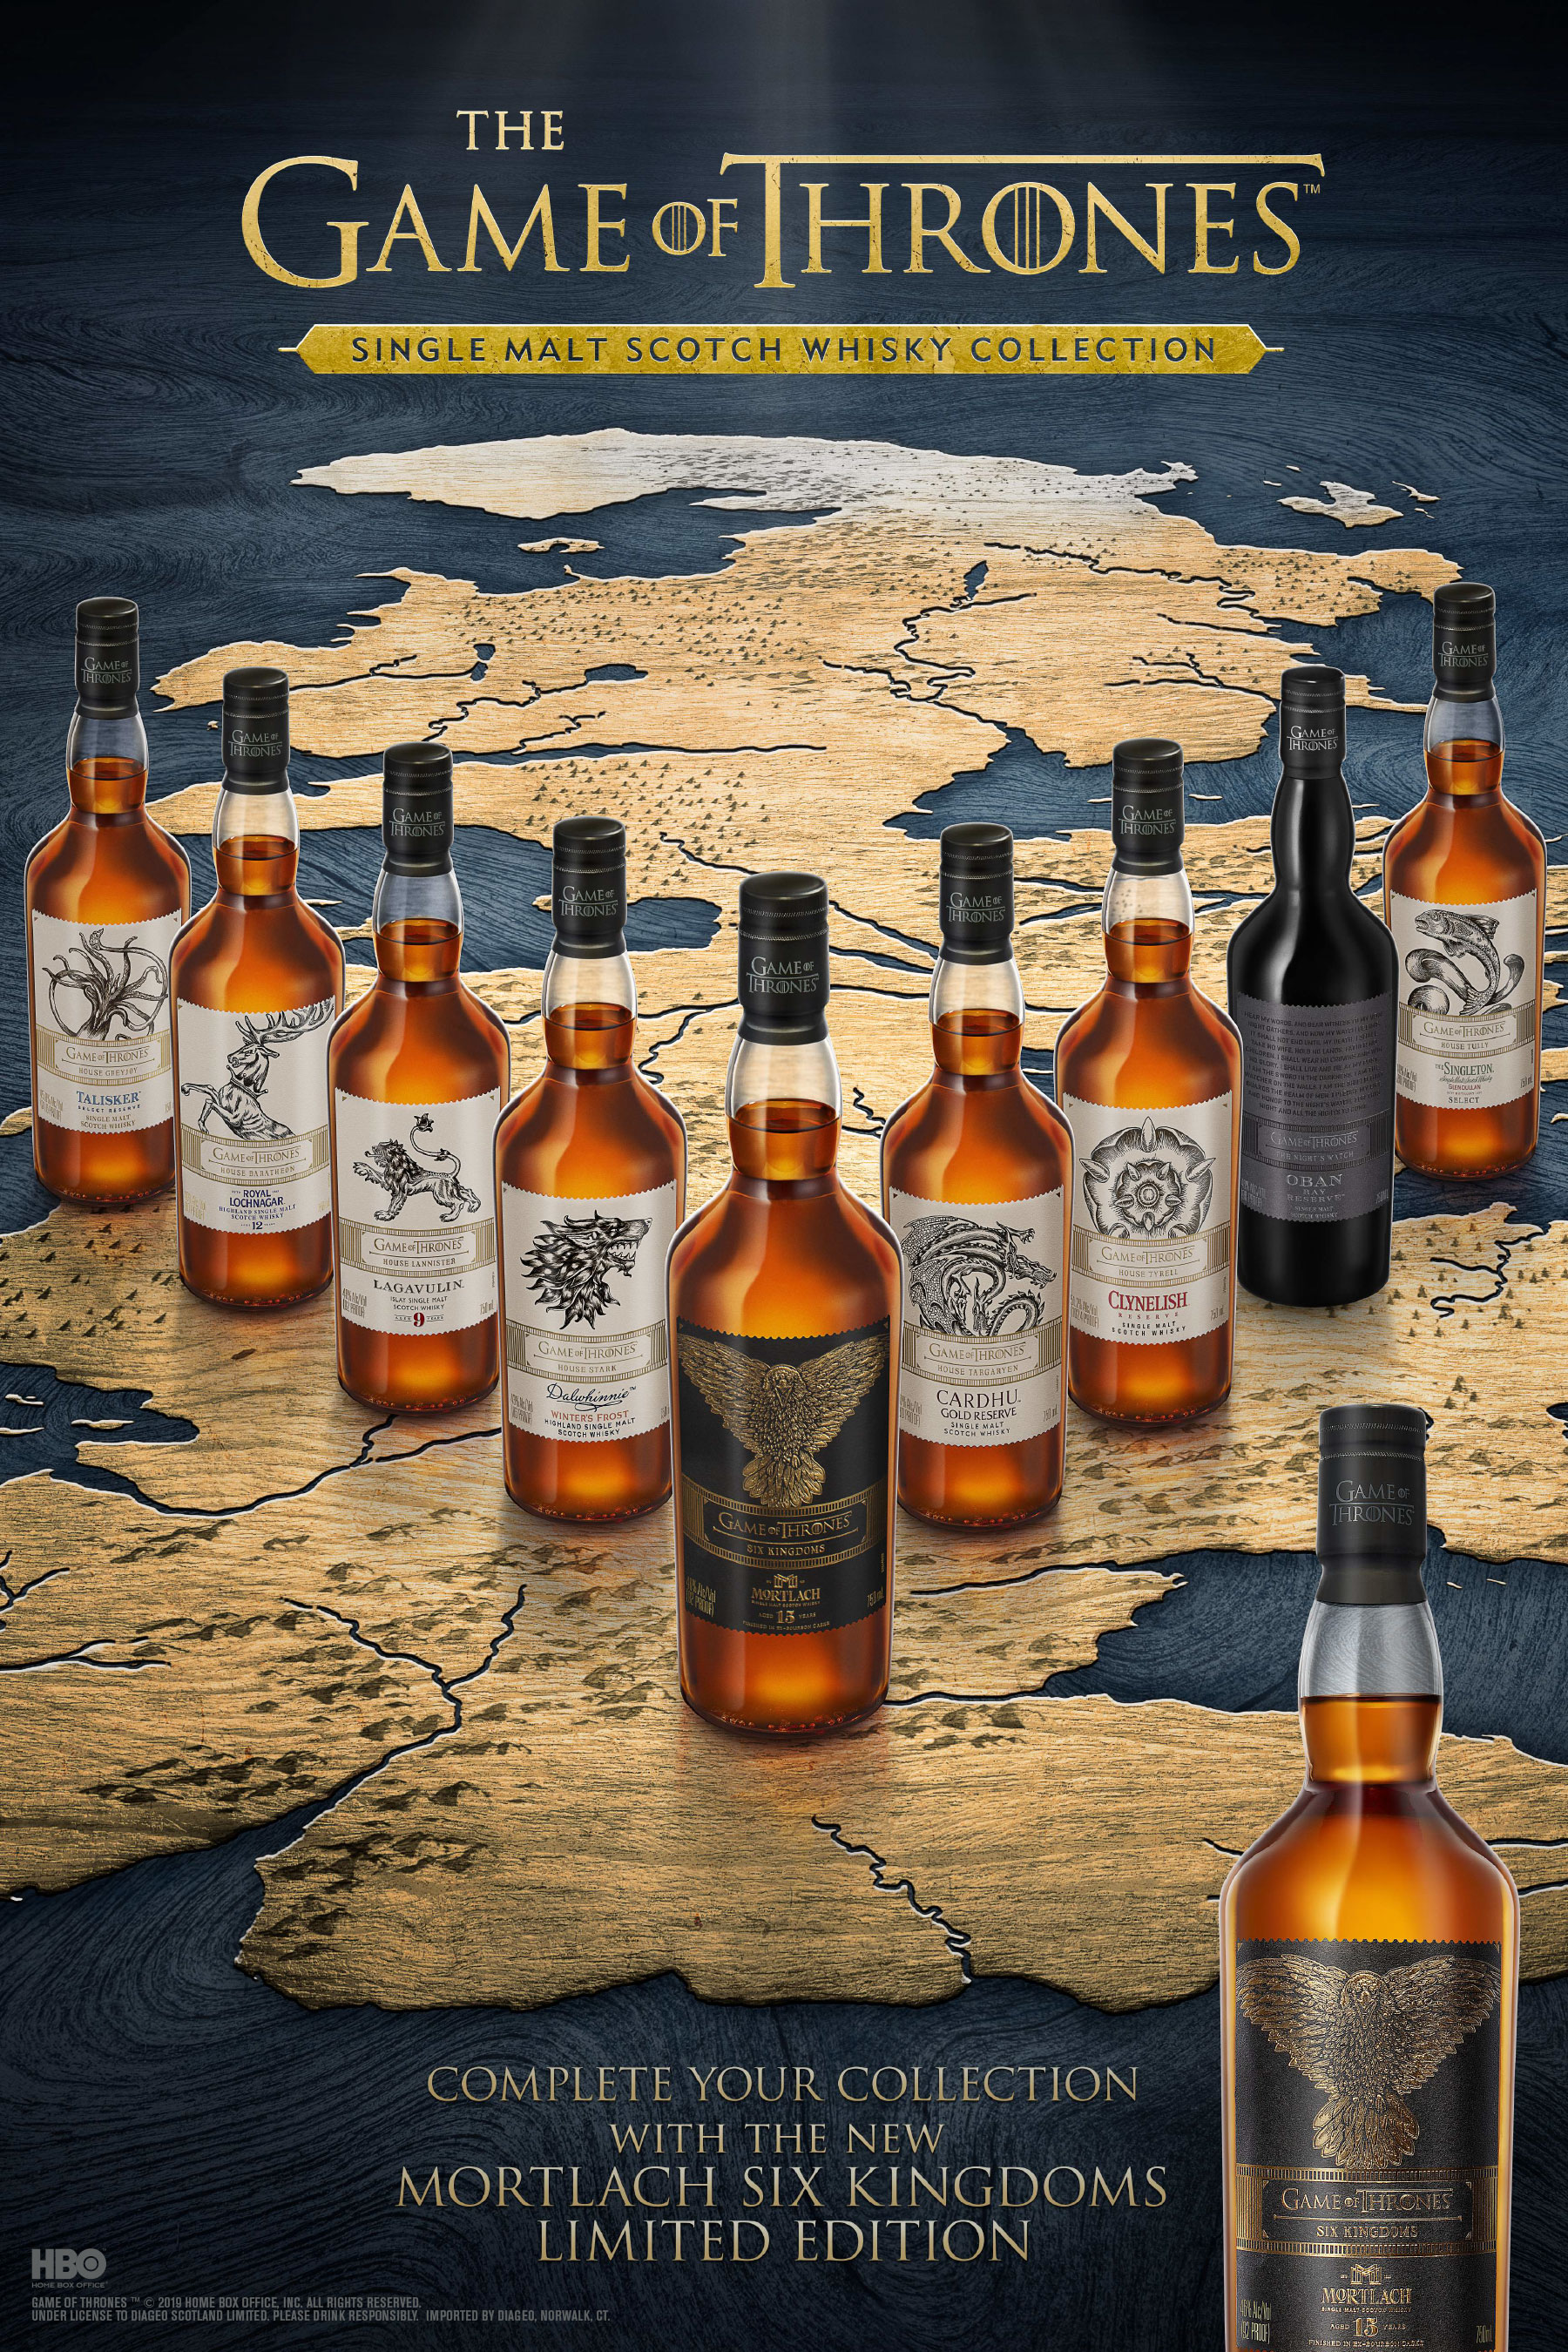 Complete Your Collection with the New Game of Thrones Six Kingdoms - Mortlach Aged 15 Years